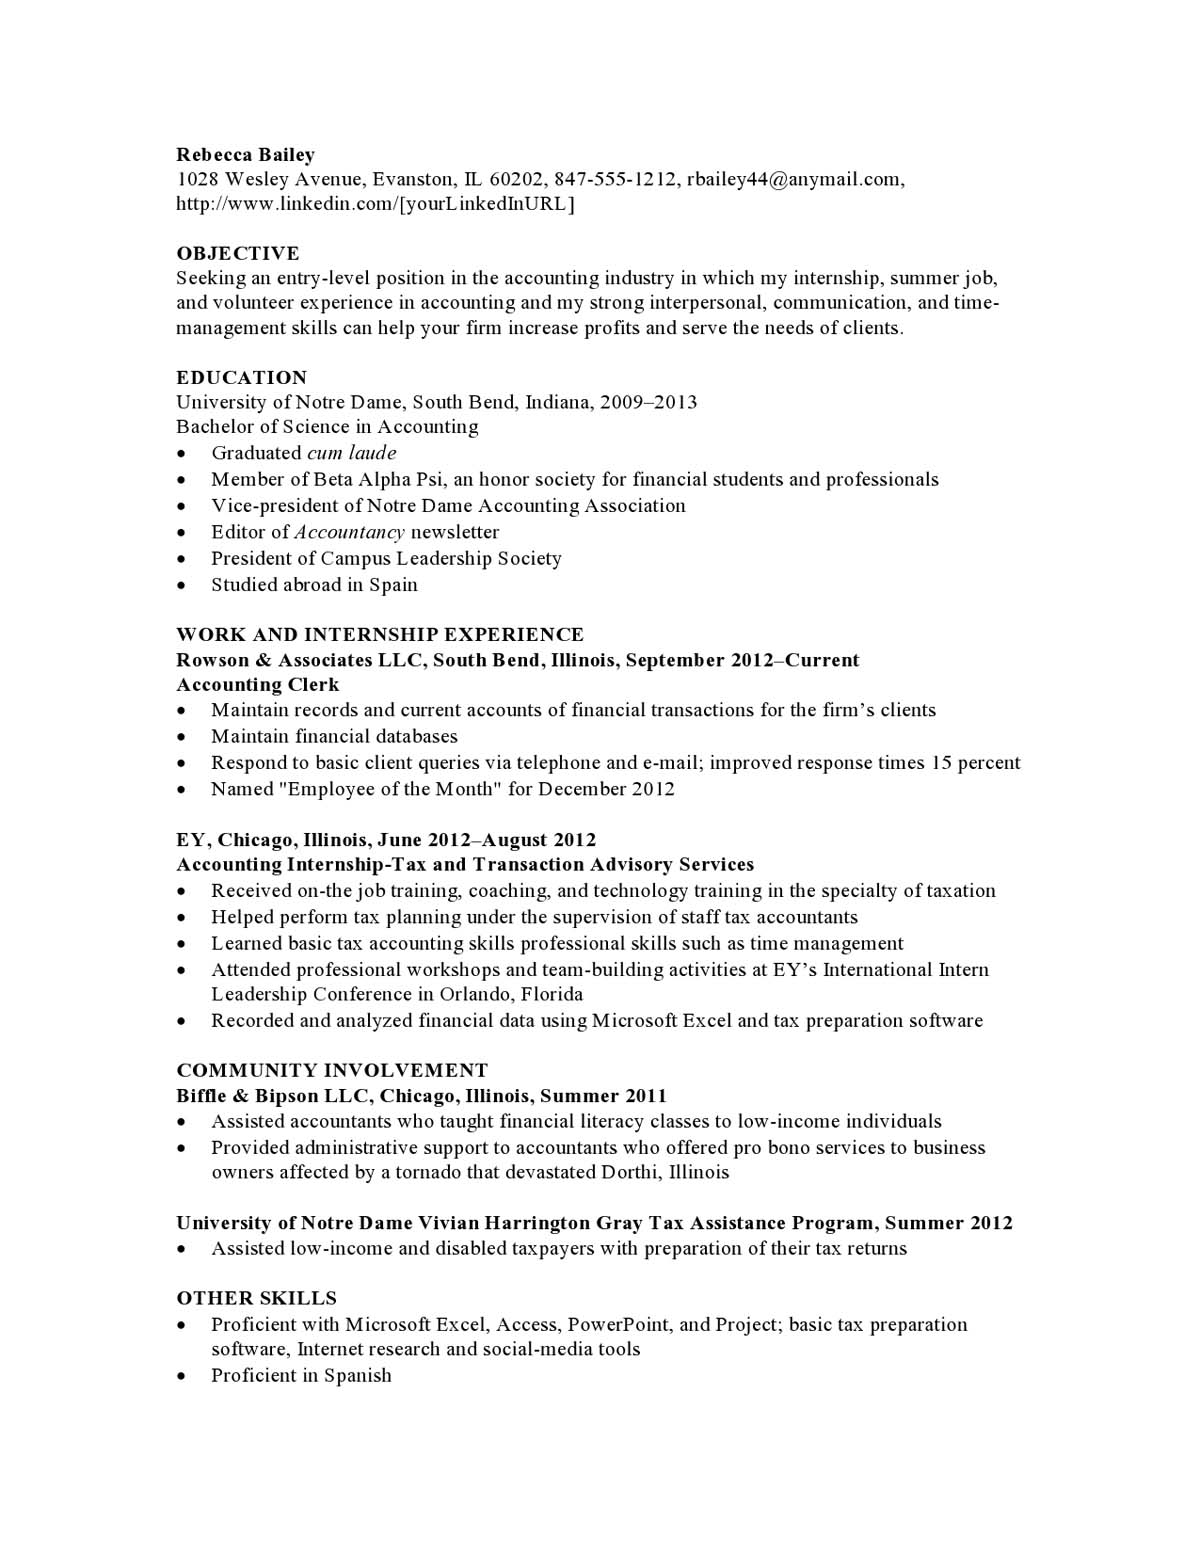 resume samples templates examples vault entry level and crescoact19 onboarding job Resume Entry Level Resume Examples And Samples